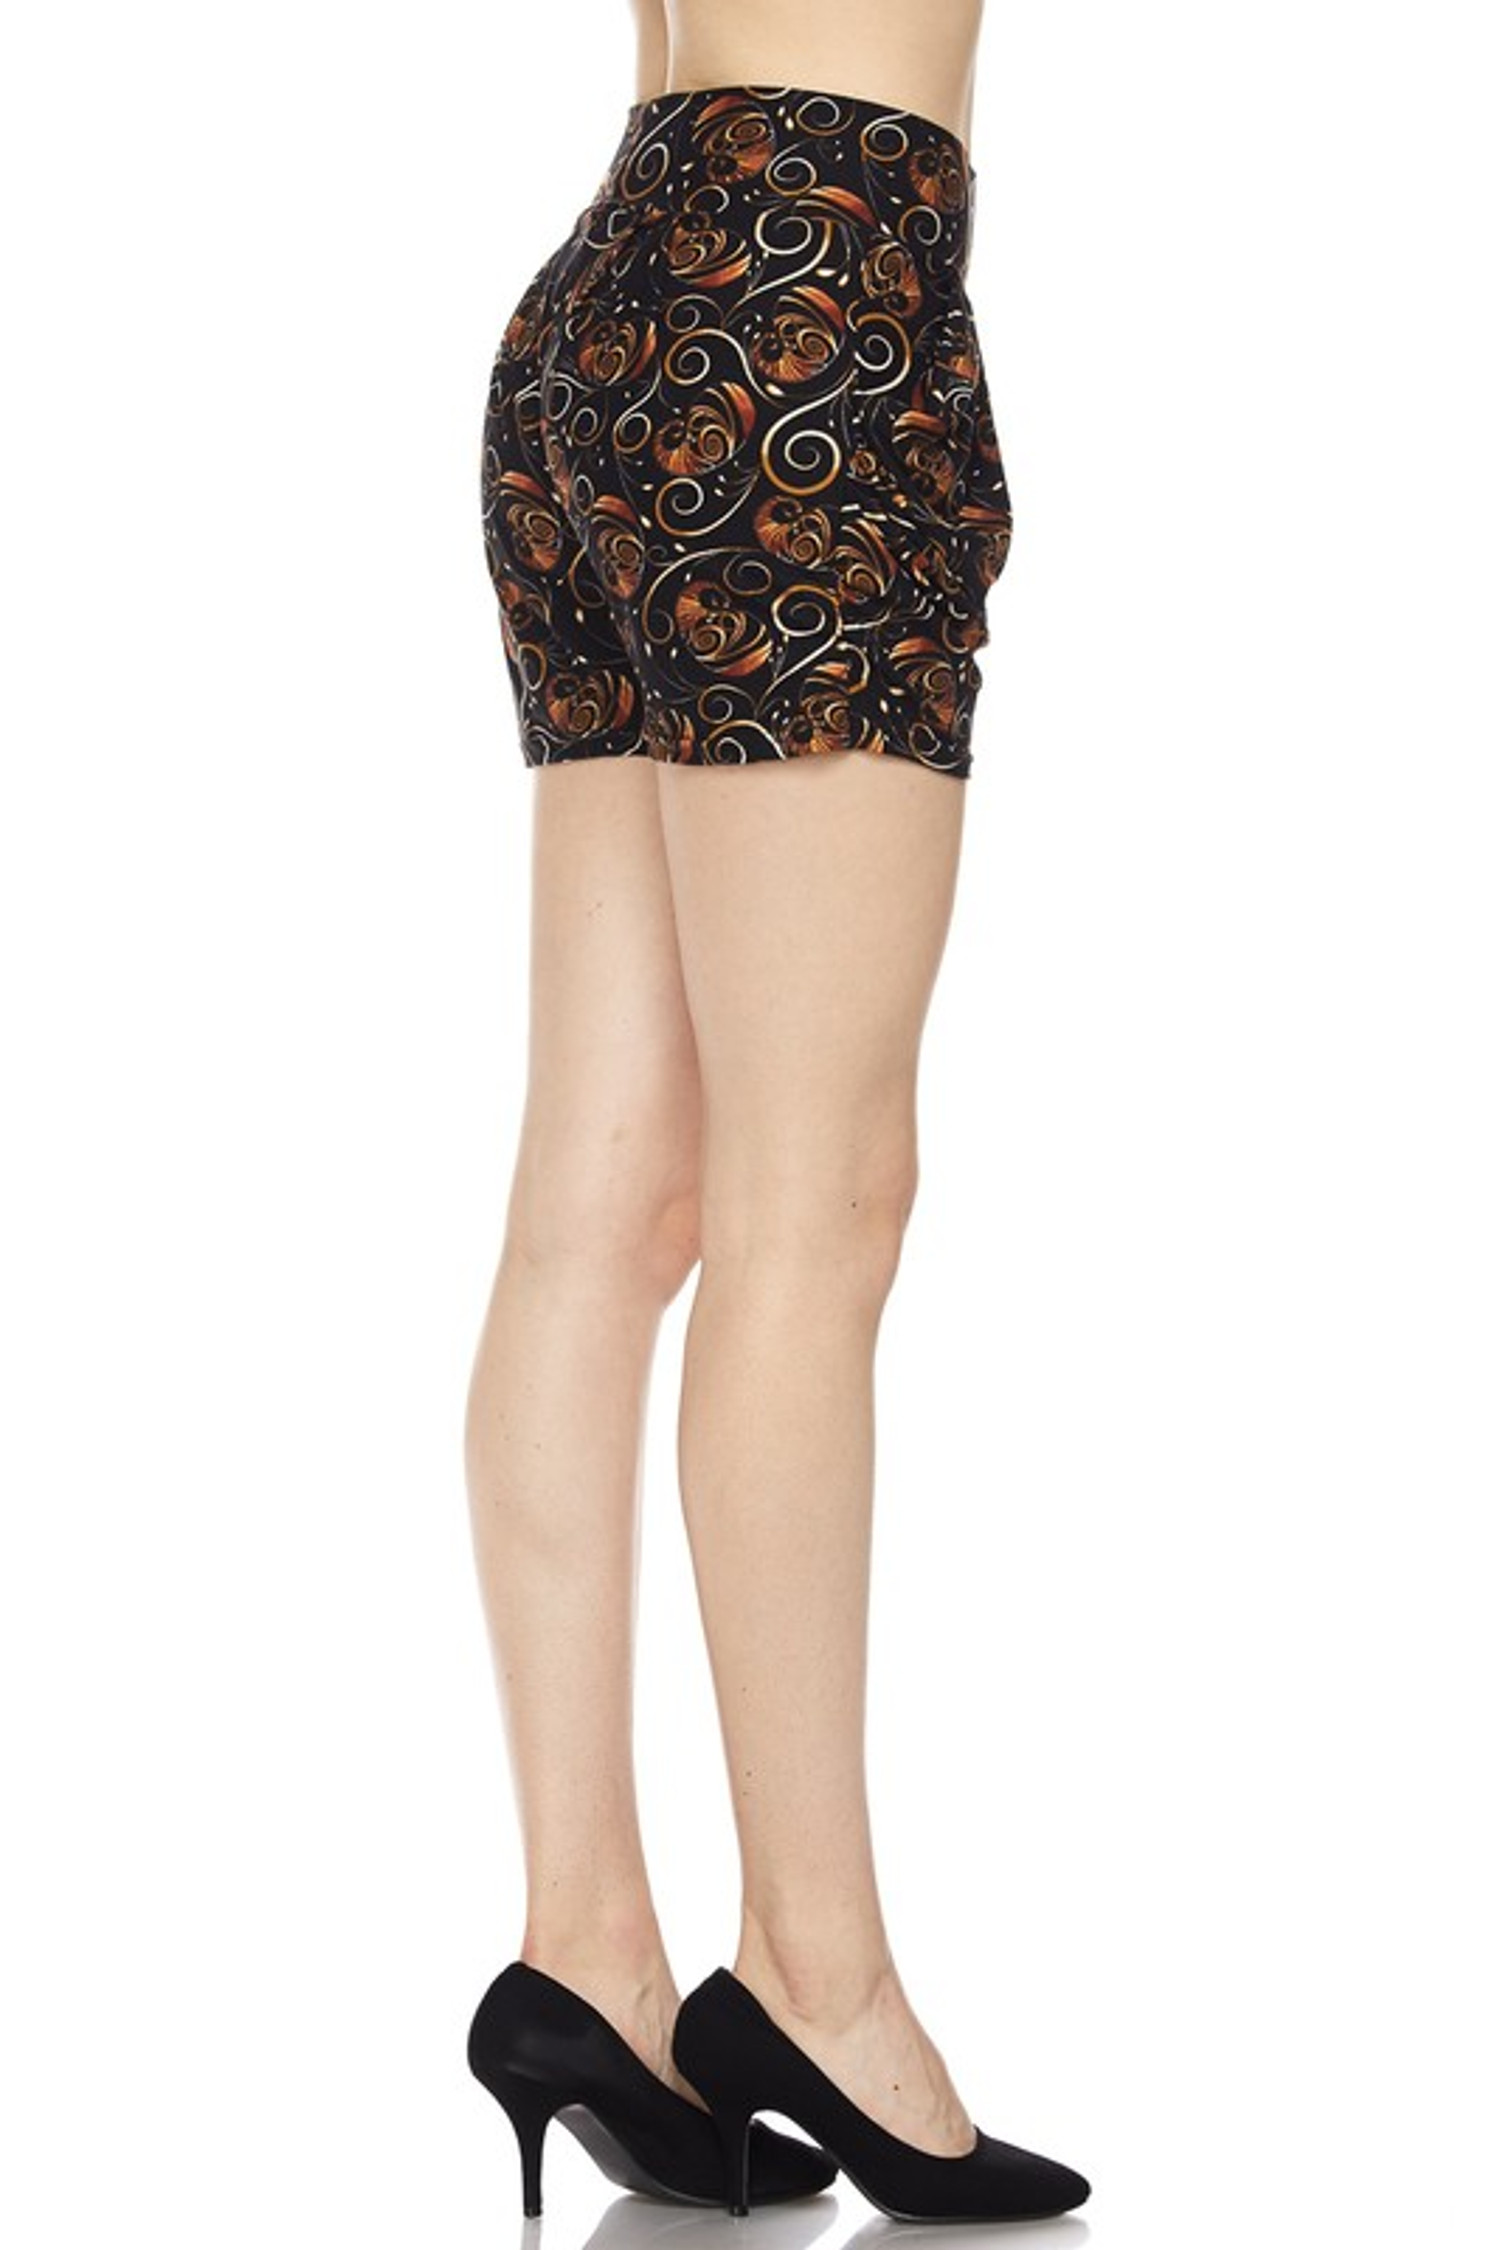 Wholesale Buttery Soft Chic Repose Harem Shorts